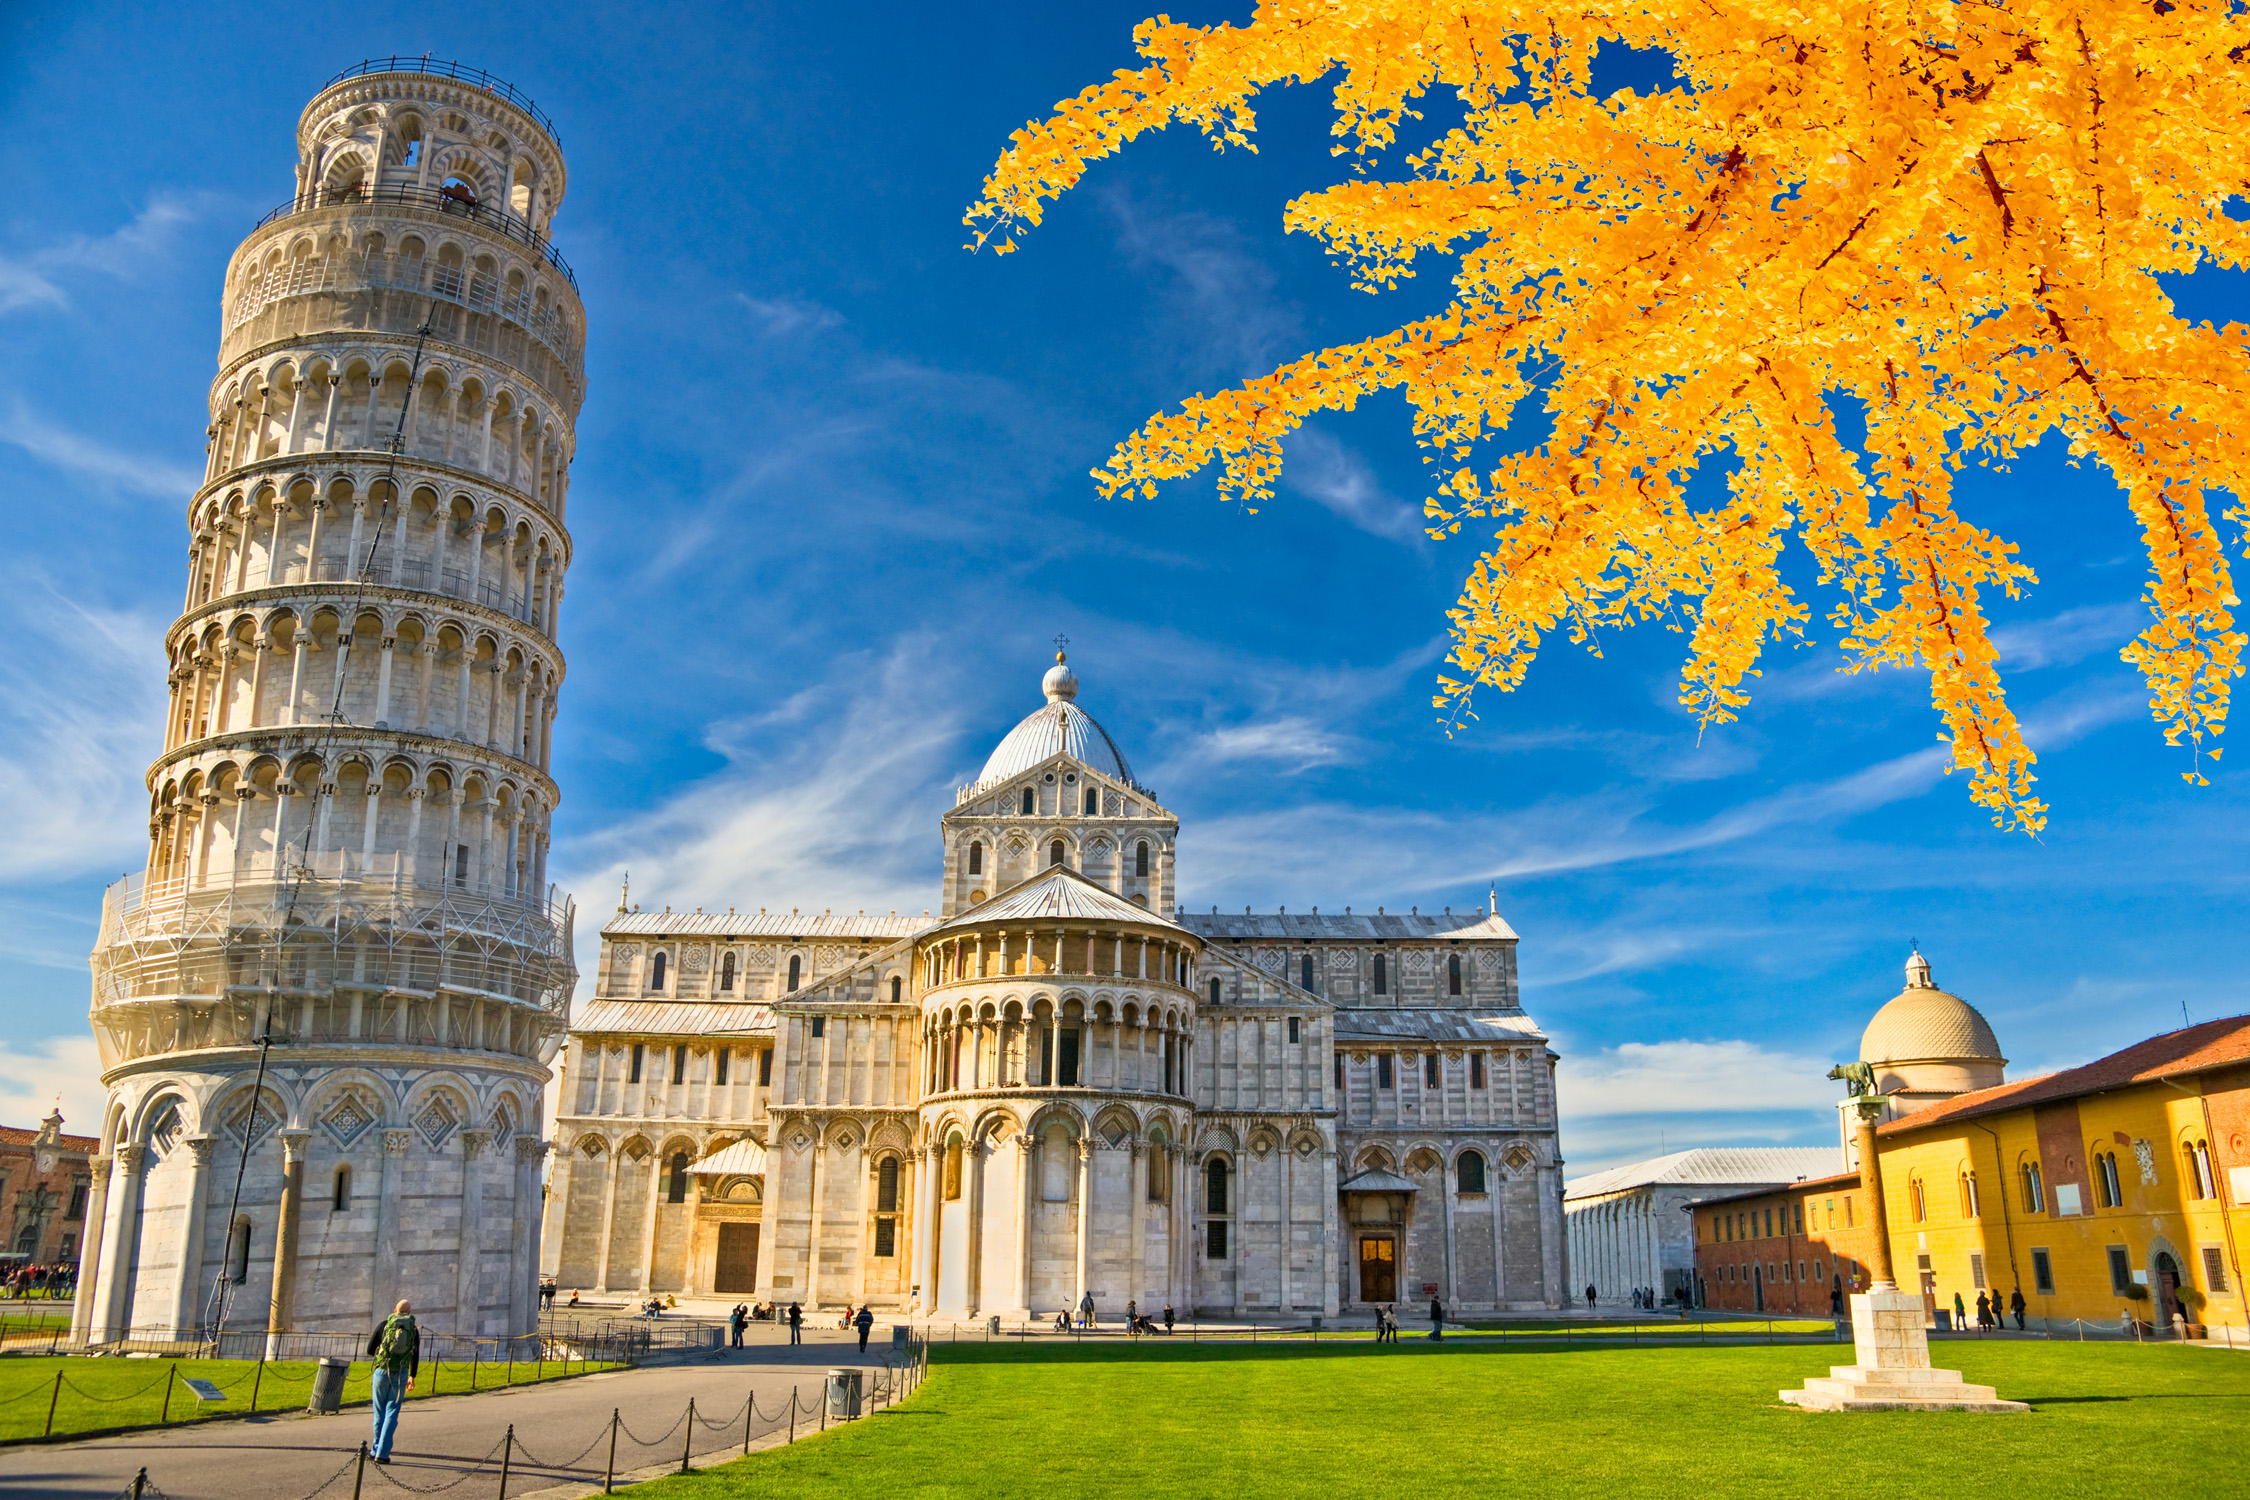 Pisa Tourist Place For Italy